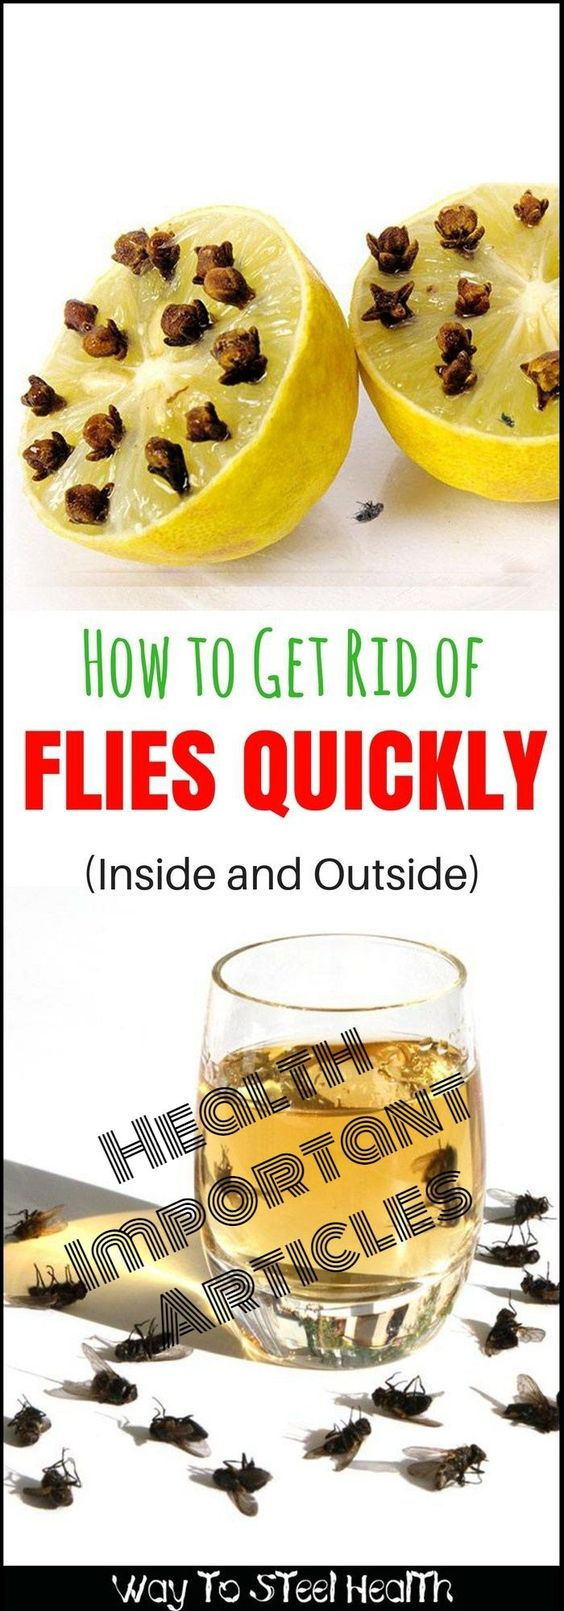 How To Get Rid Of Flies Quickly (Inside & Outside)!!!